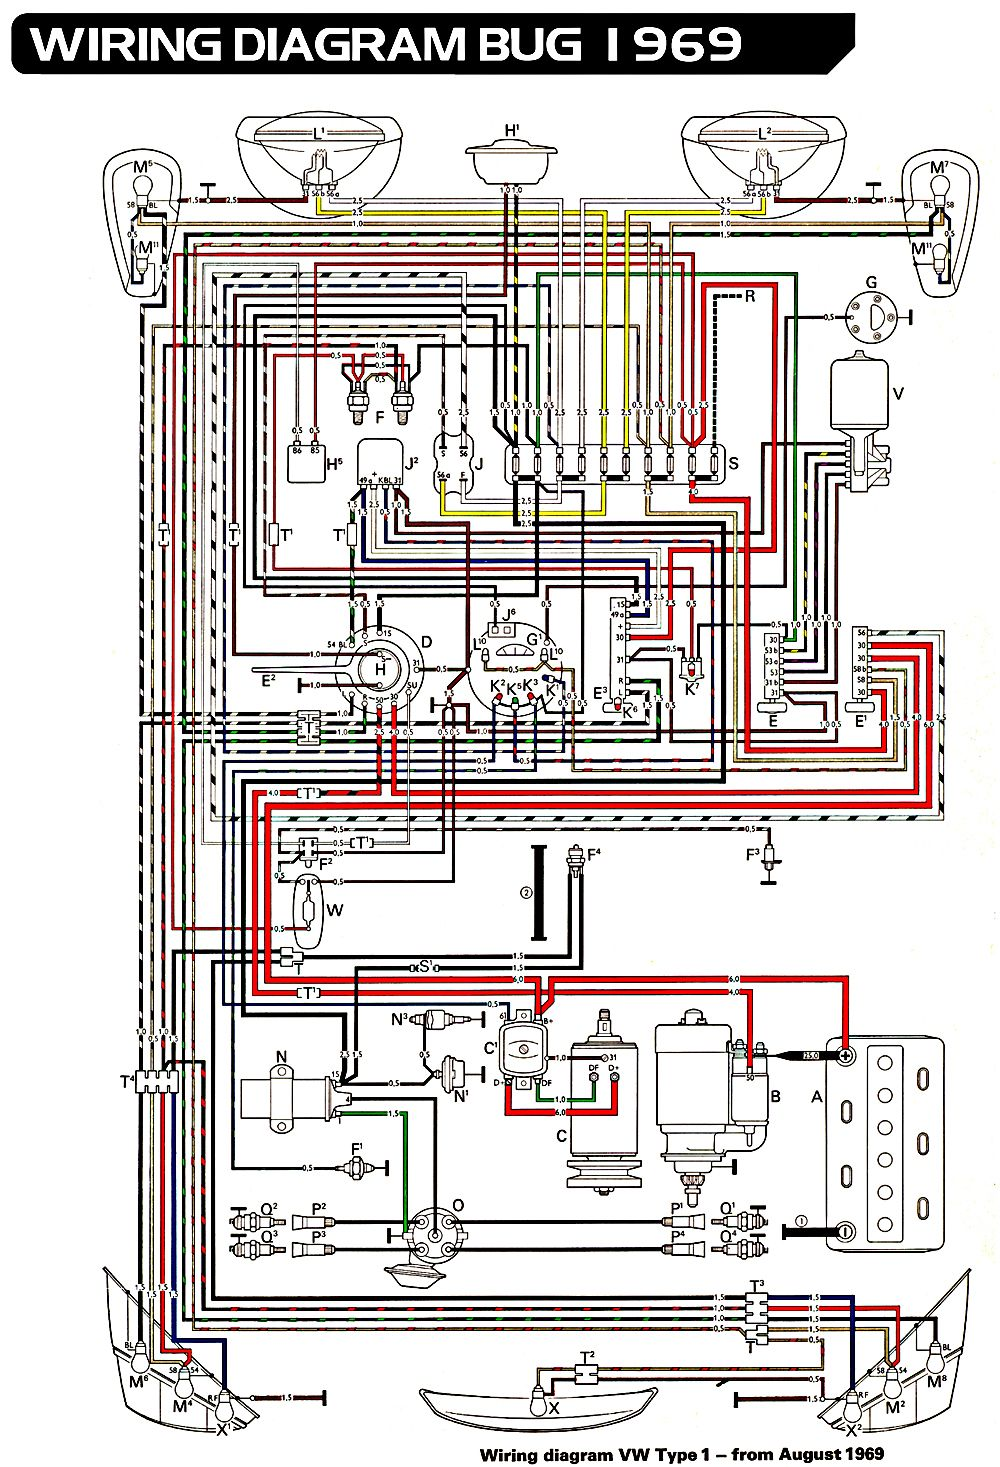 6d75c15875479254f26a32a8499d9044 volkswagen beetle wiring diagram 1966 vw beetle wiring 1968 vw type 3 wiring diagram at gsmx.co